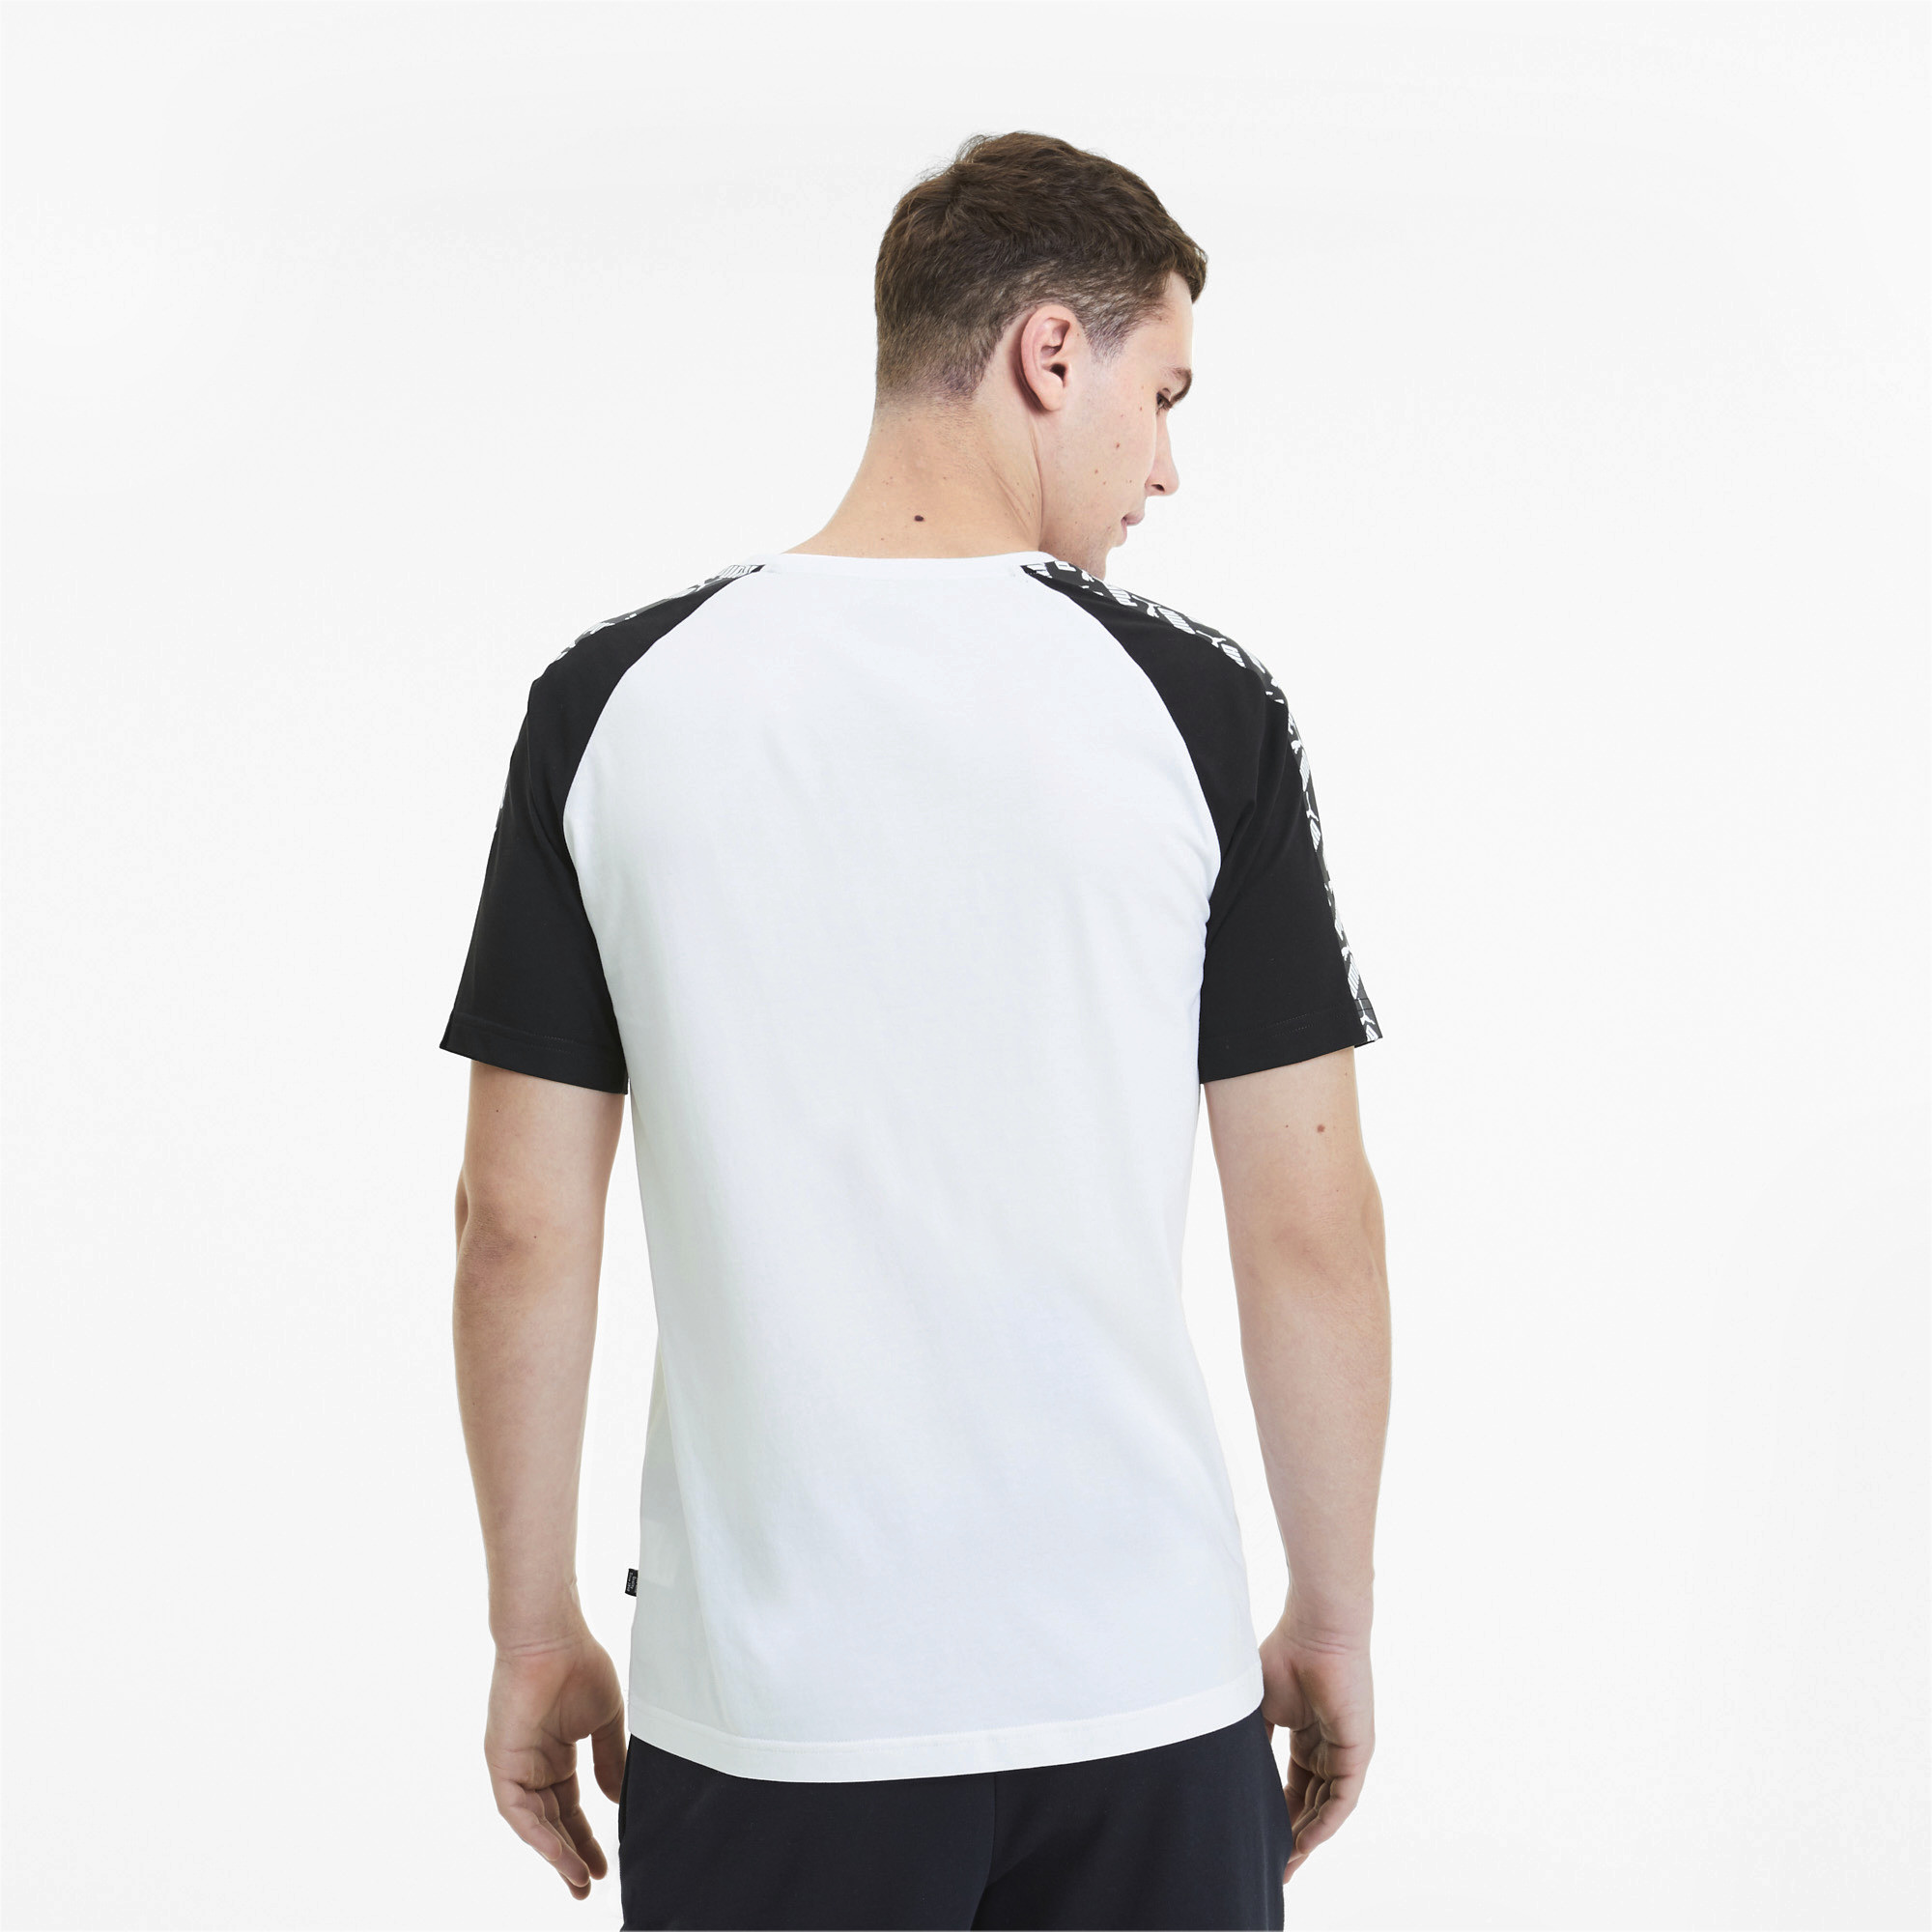 PUMA-Amplified-Men-039-s-Raglan-Tee-Men-Tee-Basics thumbnail 5